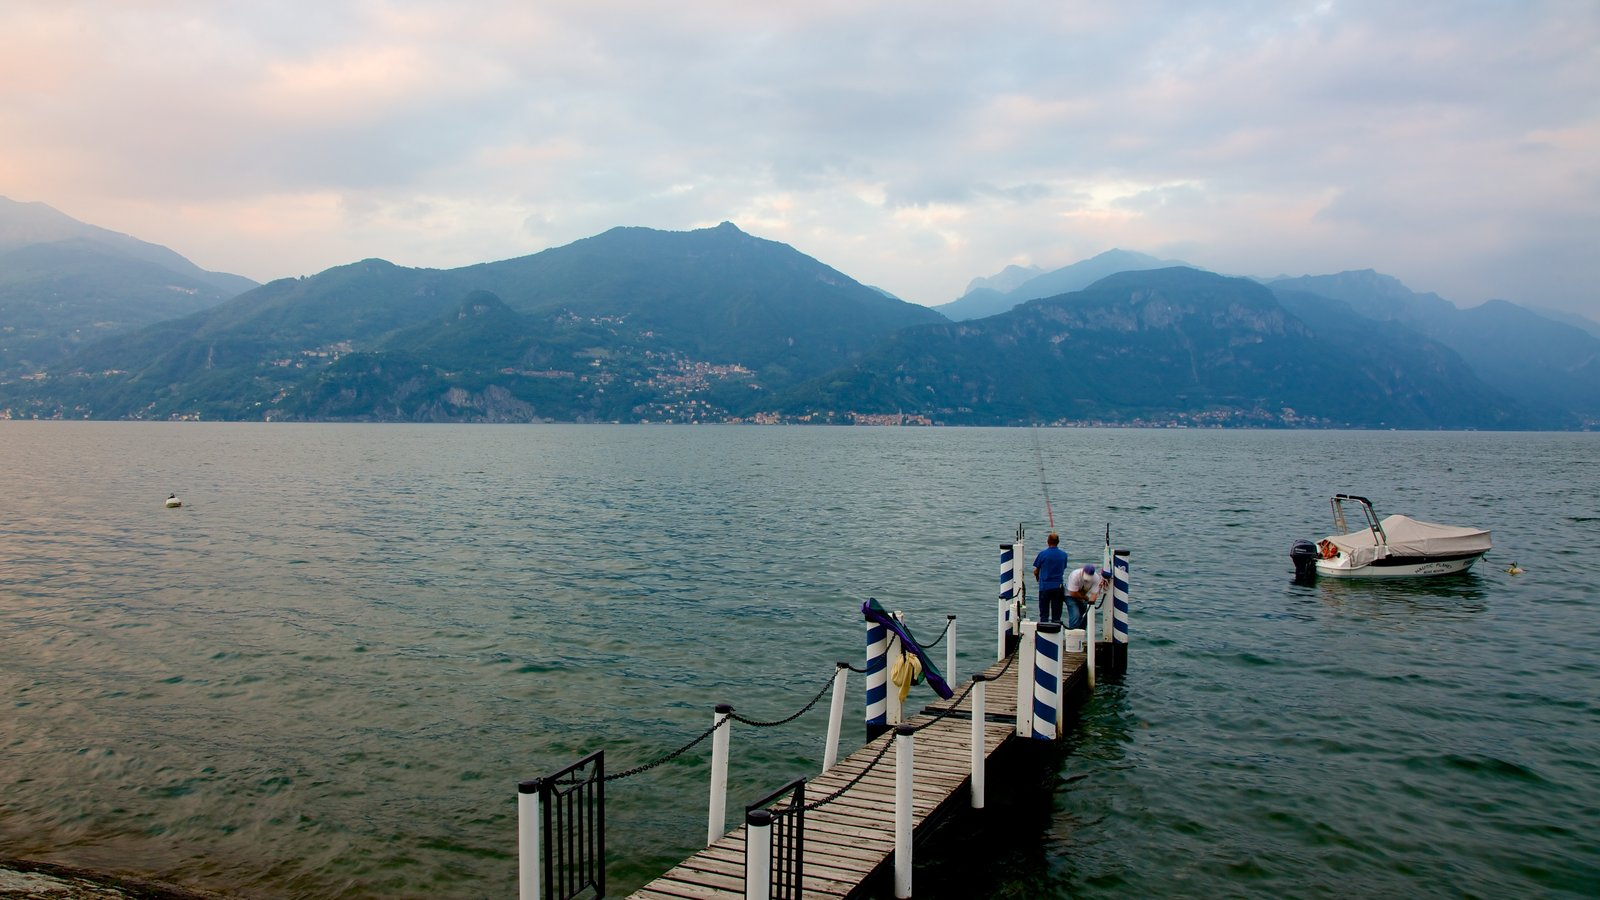 Menaggio which includes fishing, general coastal views and boating